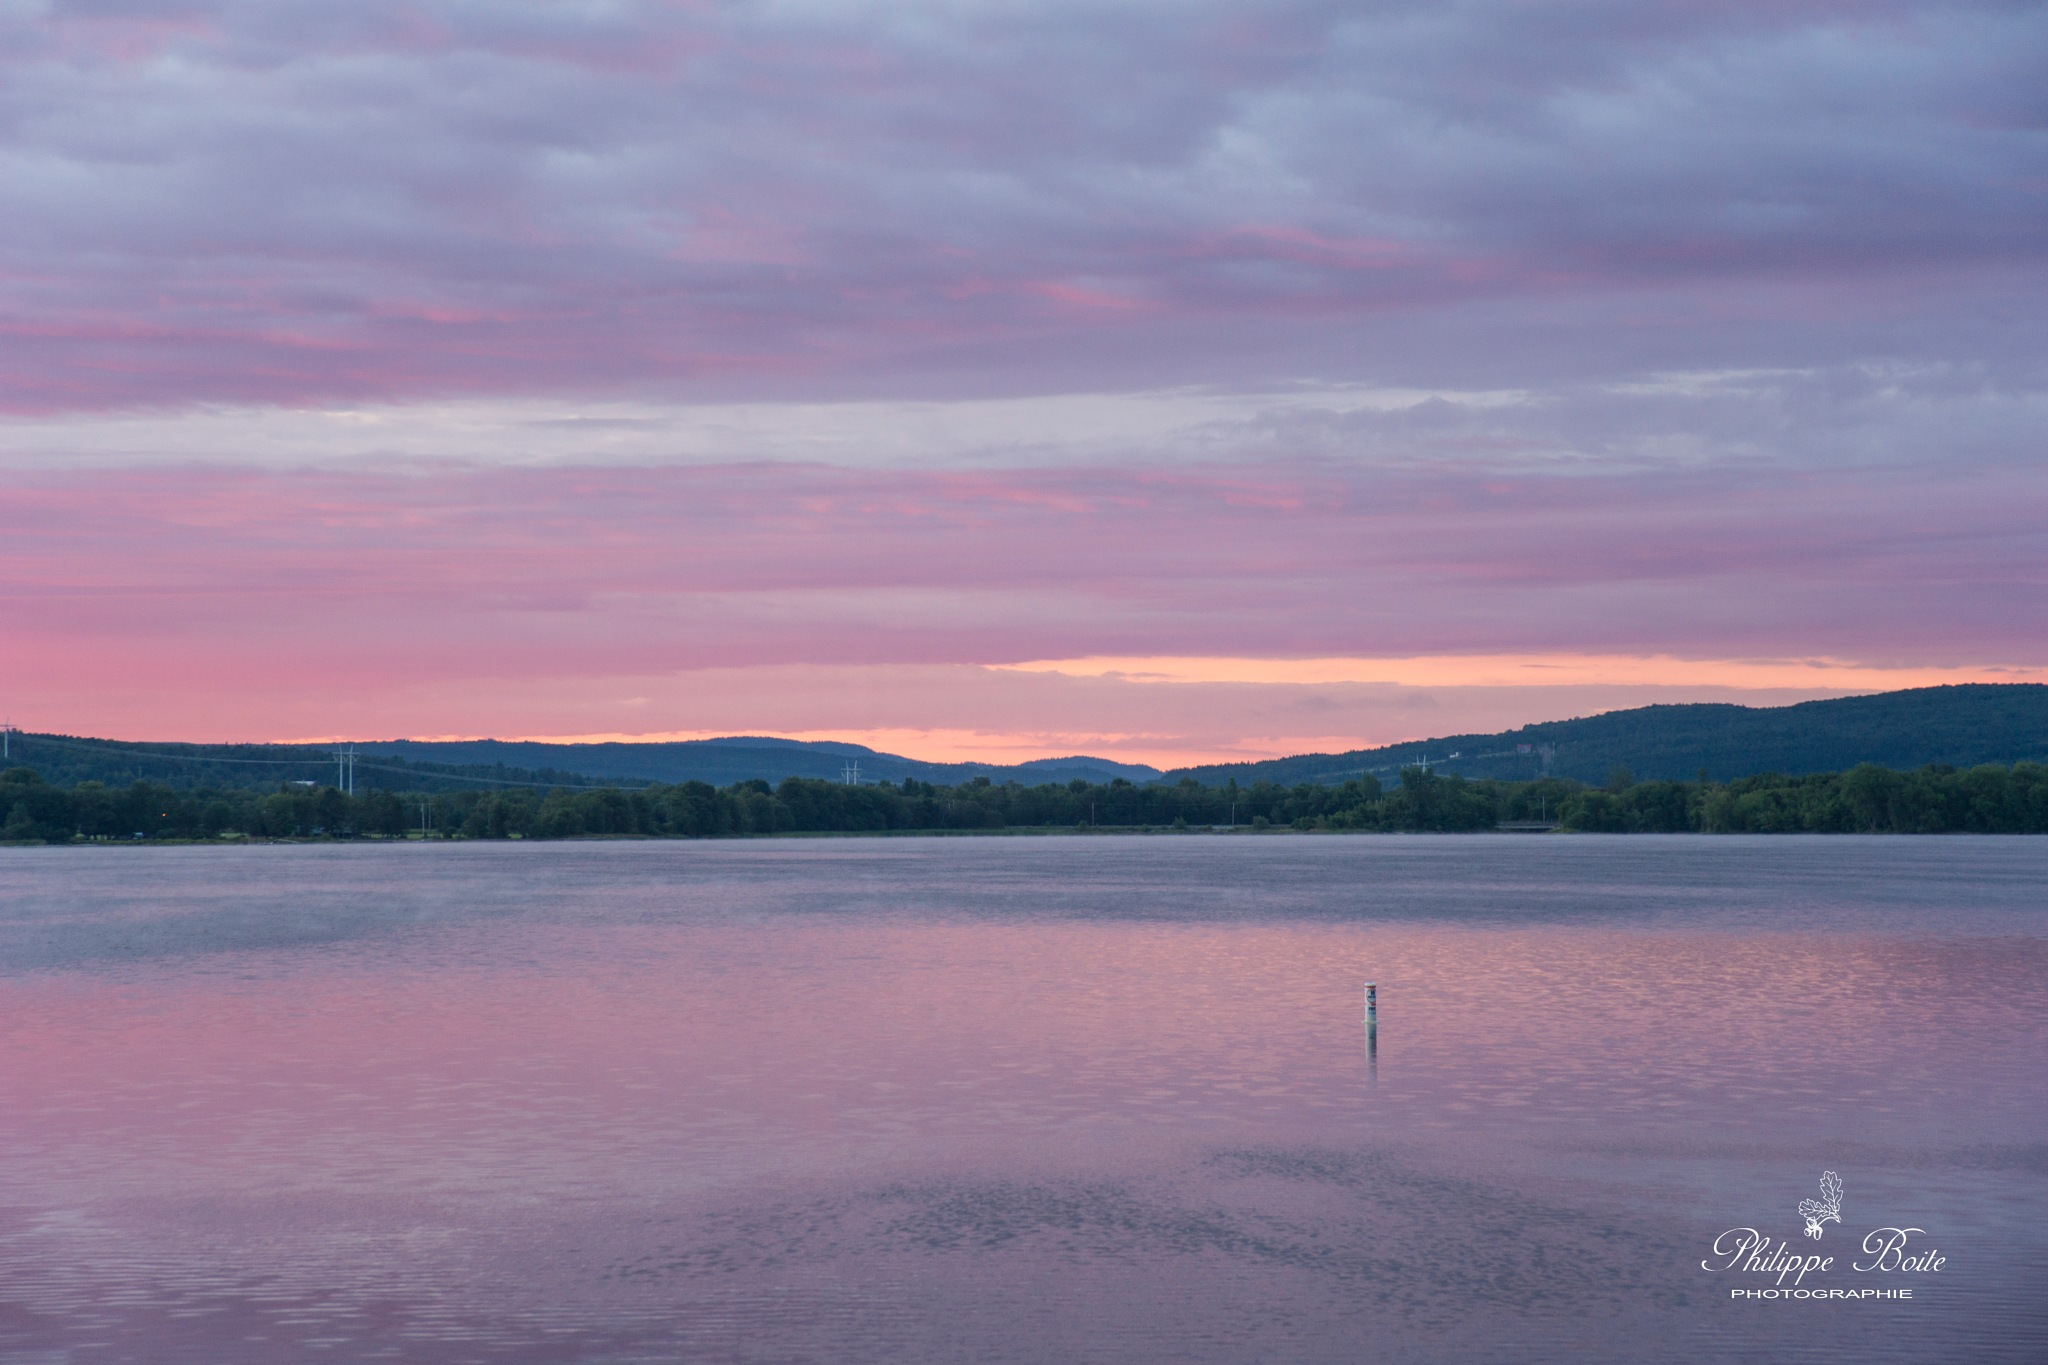 Pink dawn by Philippe Boite